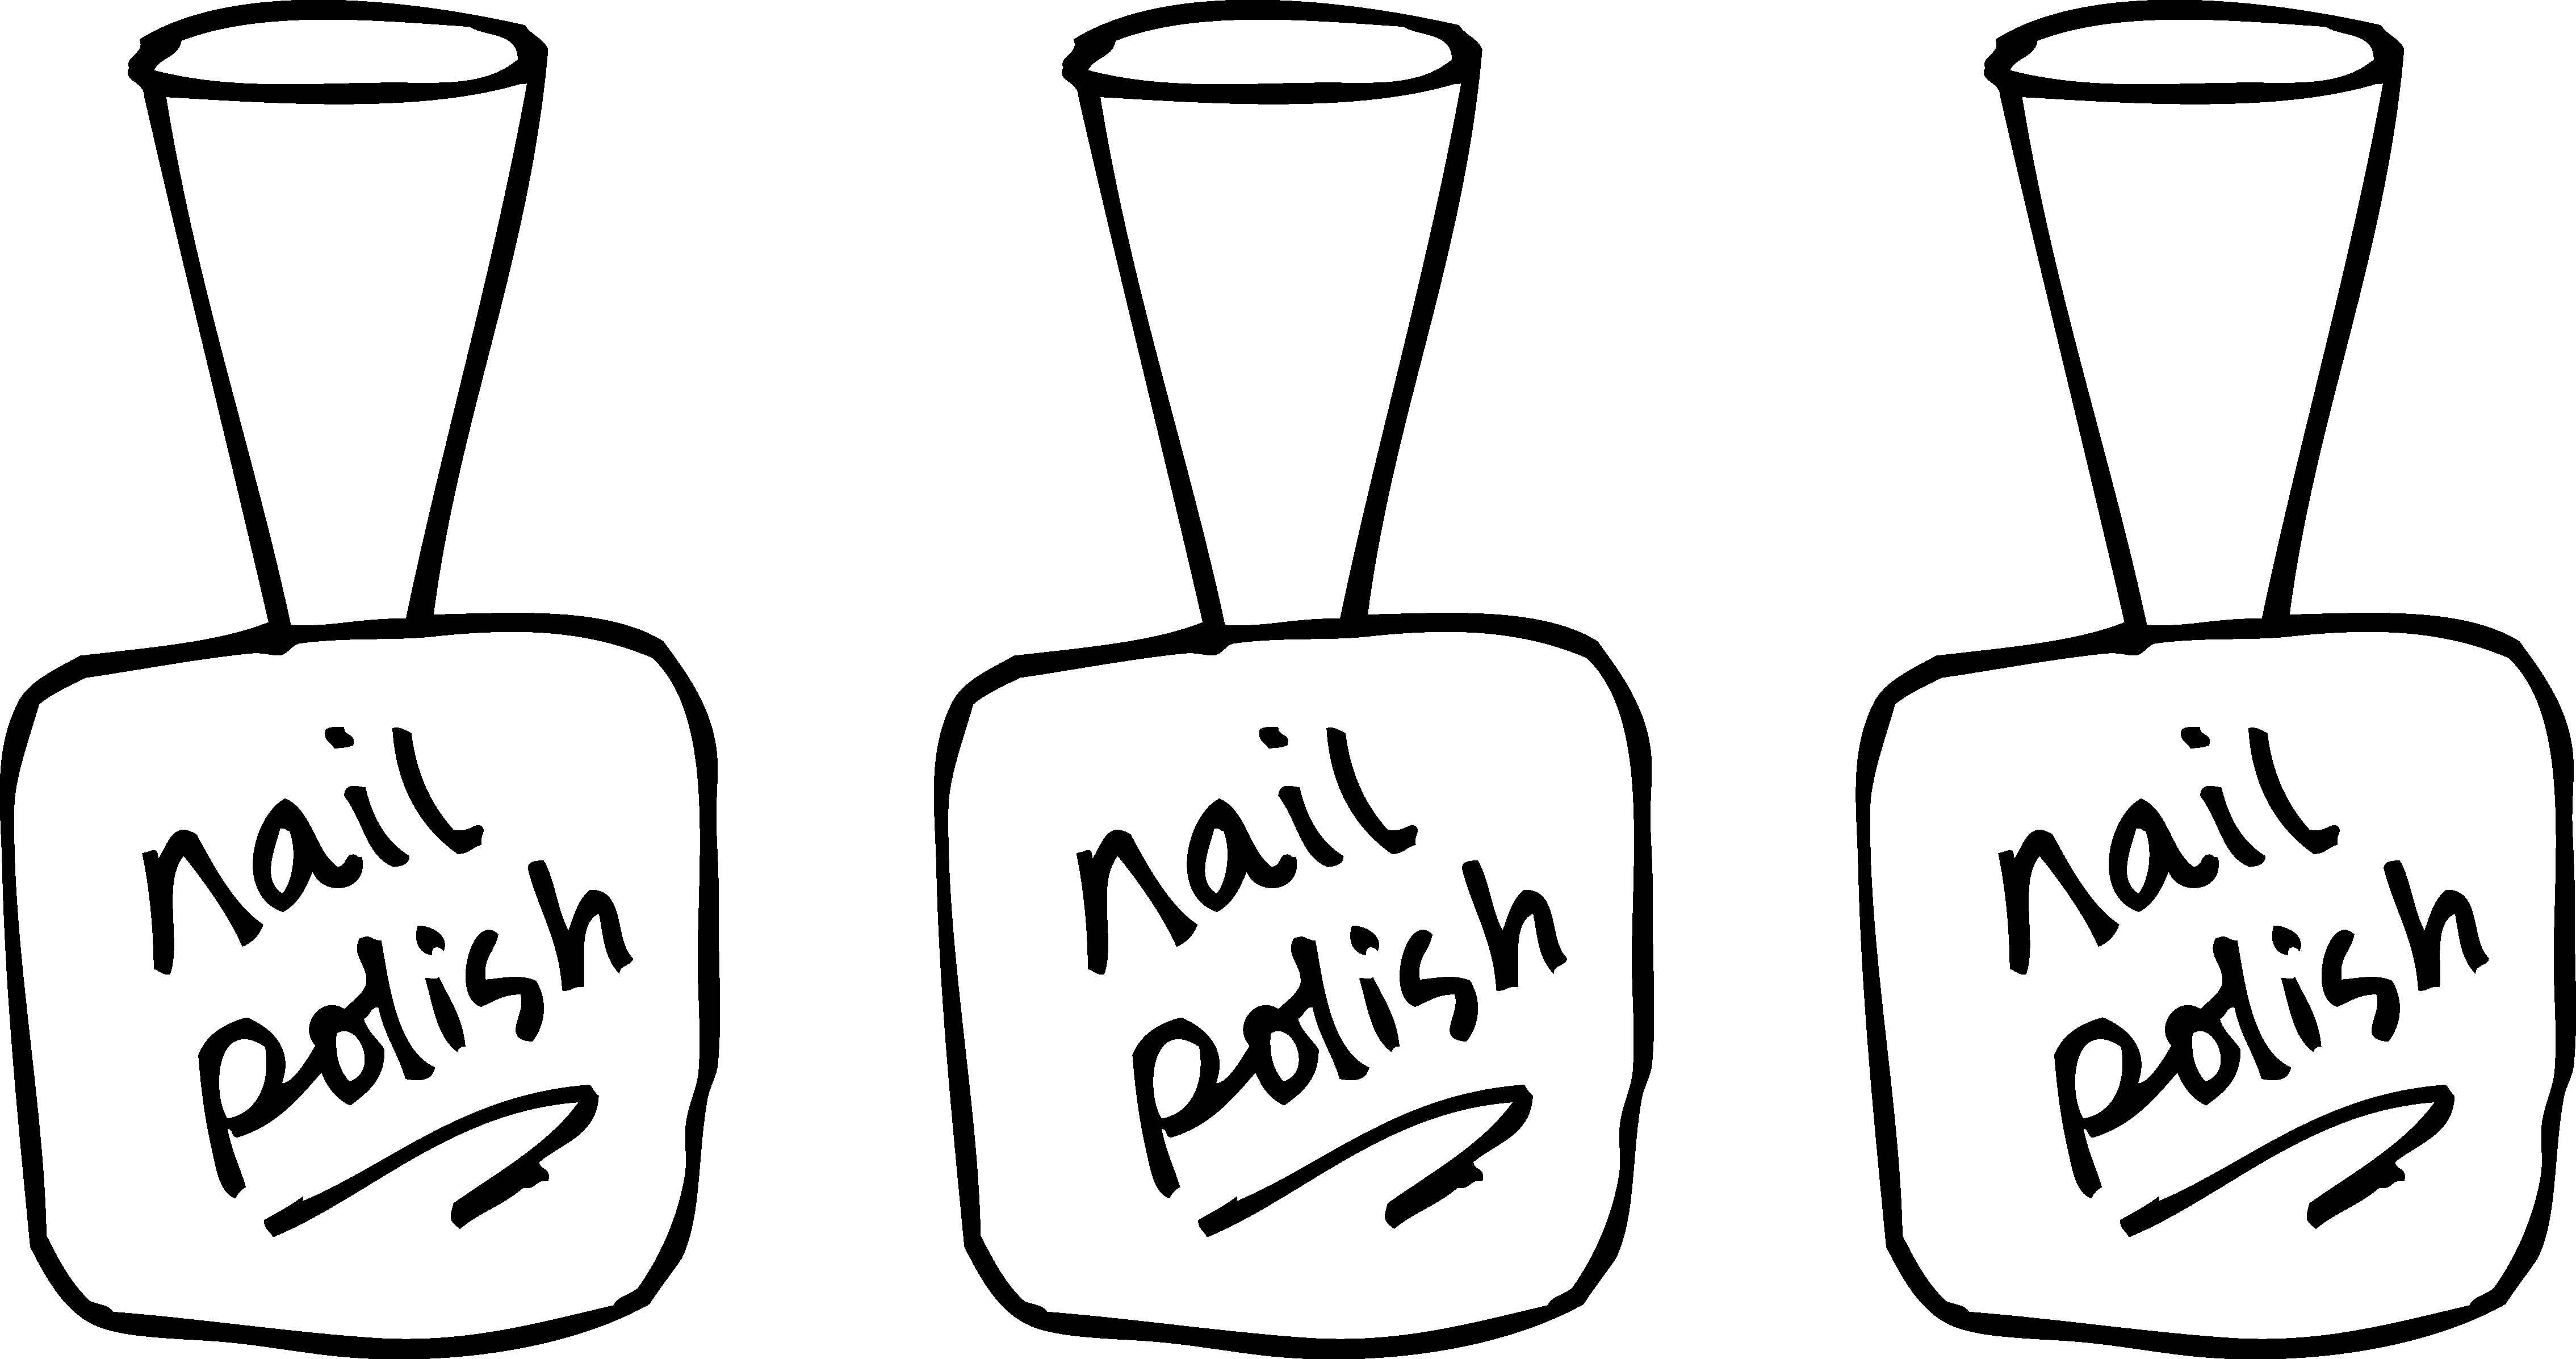 Images for nail salon clipart black and white morgan for Nail salon coloring pages